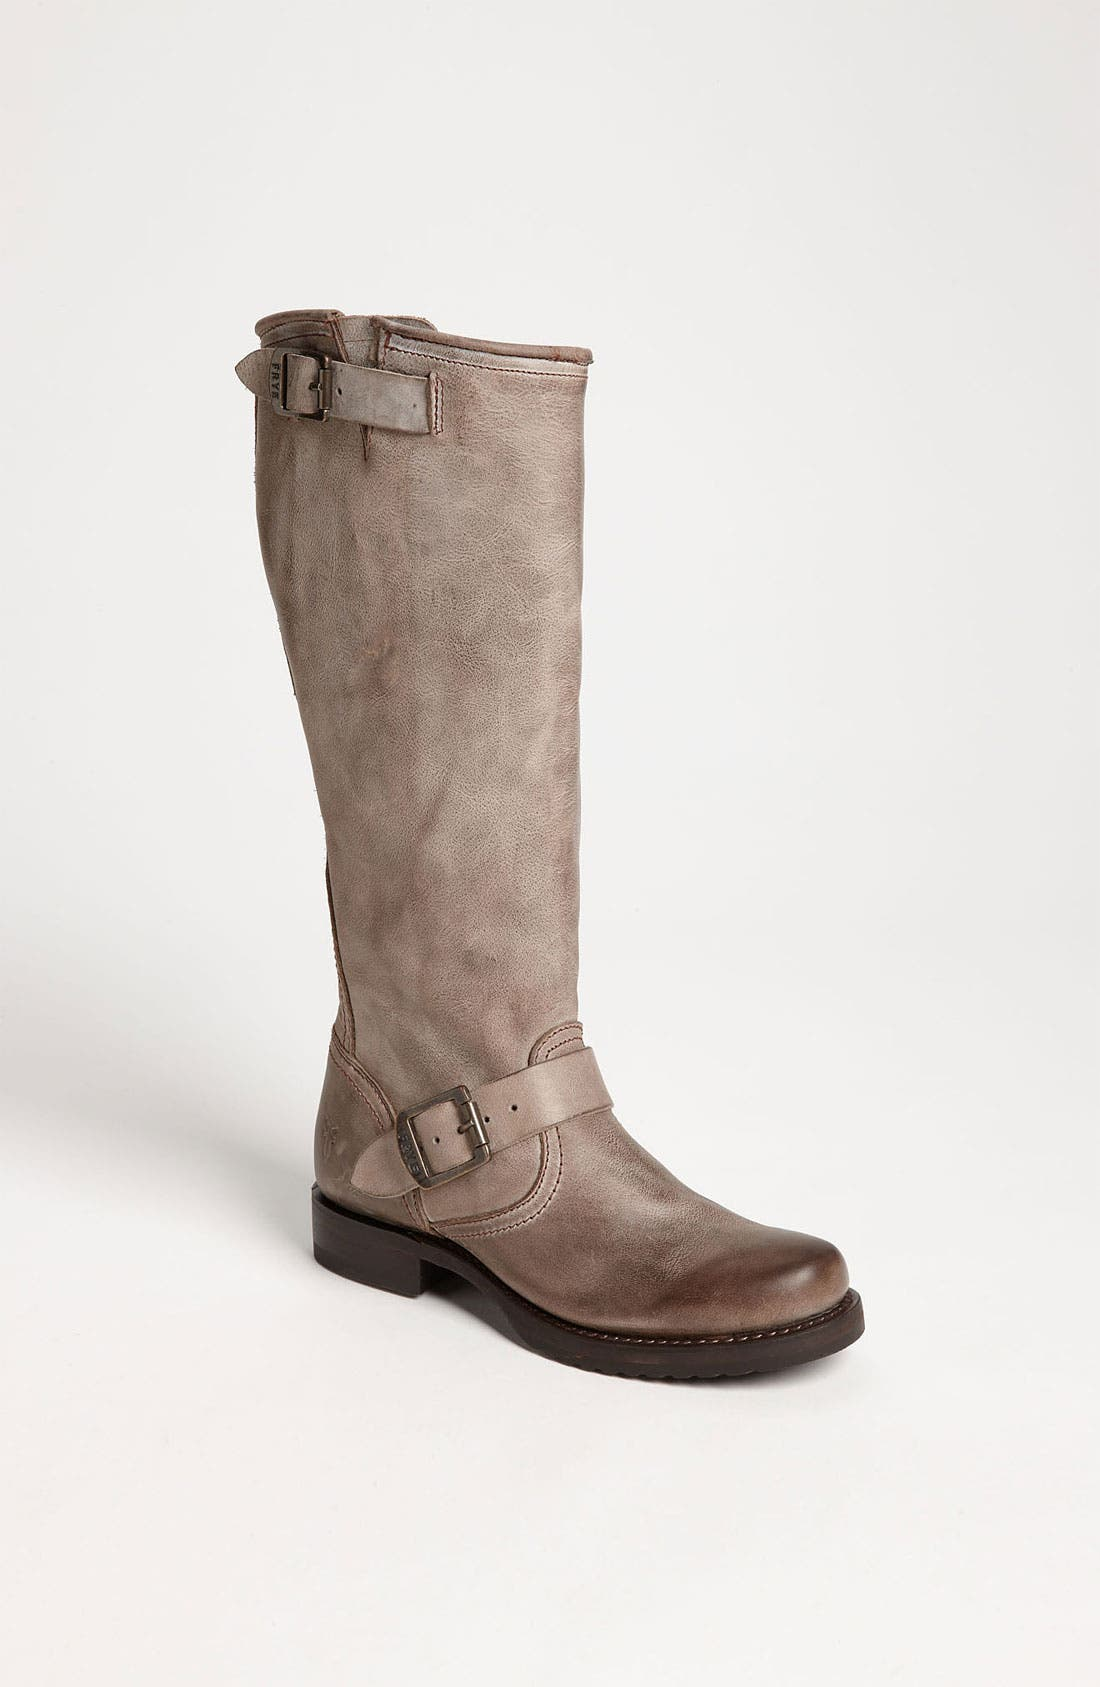 Main Image - Frye 'Veronica Slouch' Boot (Regular & Wide Calf) (Women)